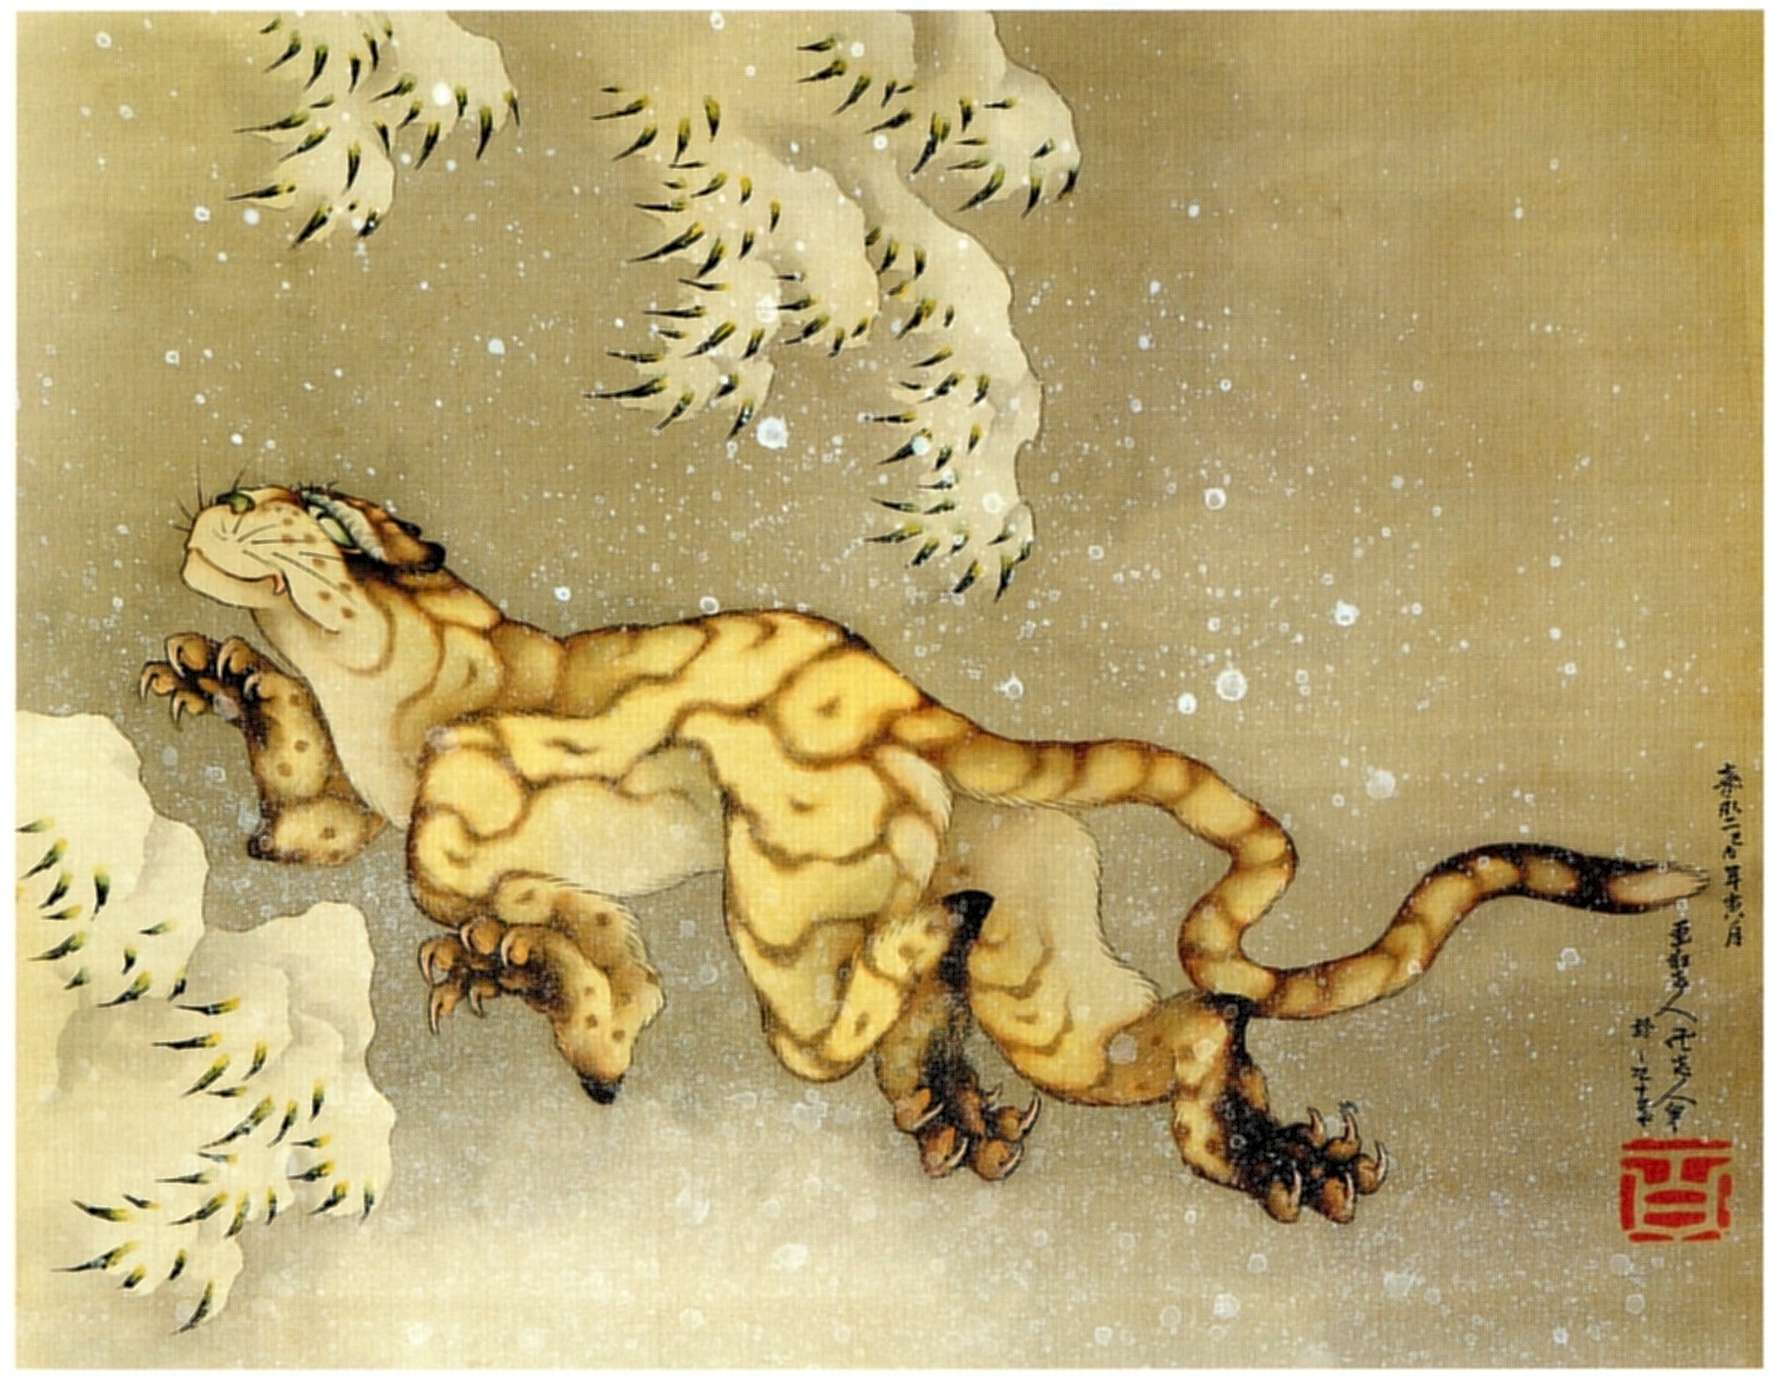 Katsushika Hokusai (1760–1849), Tiger in the snow. Hanging scroll, ink and colour on silk, 1849. Private collection, USA.